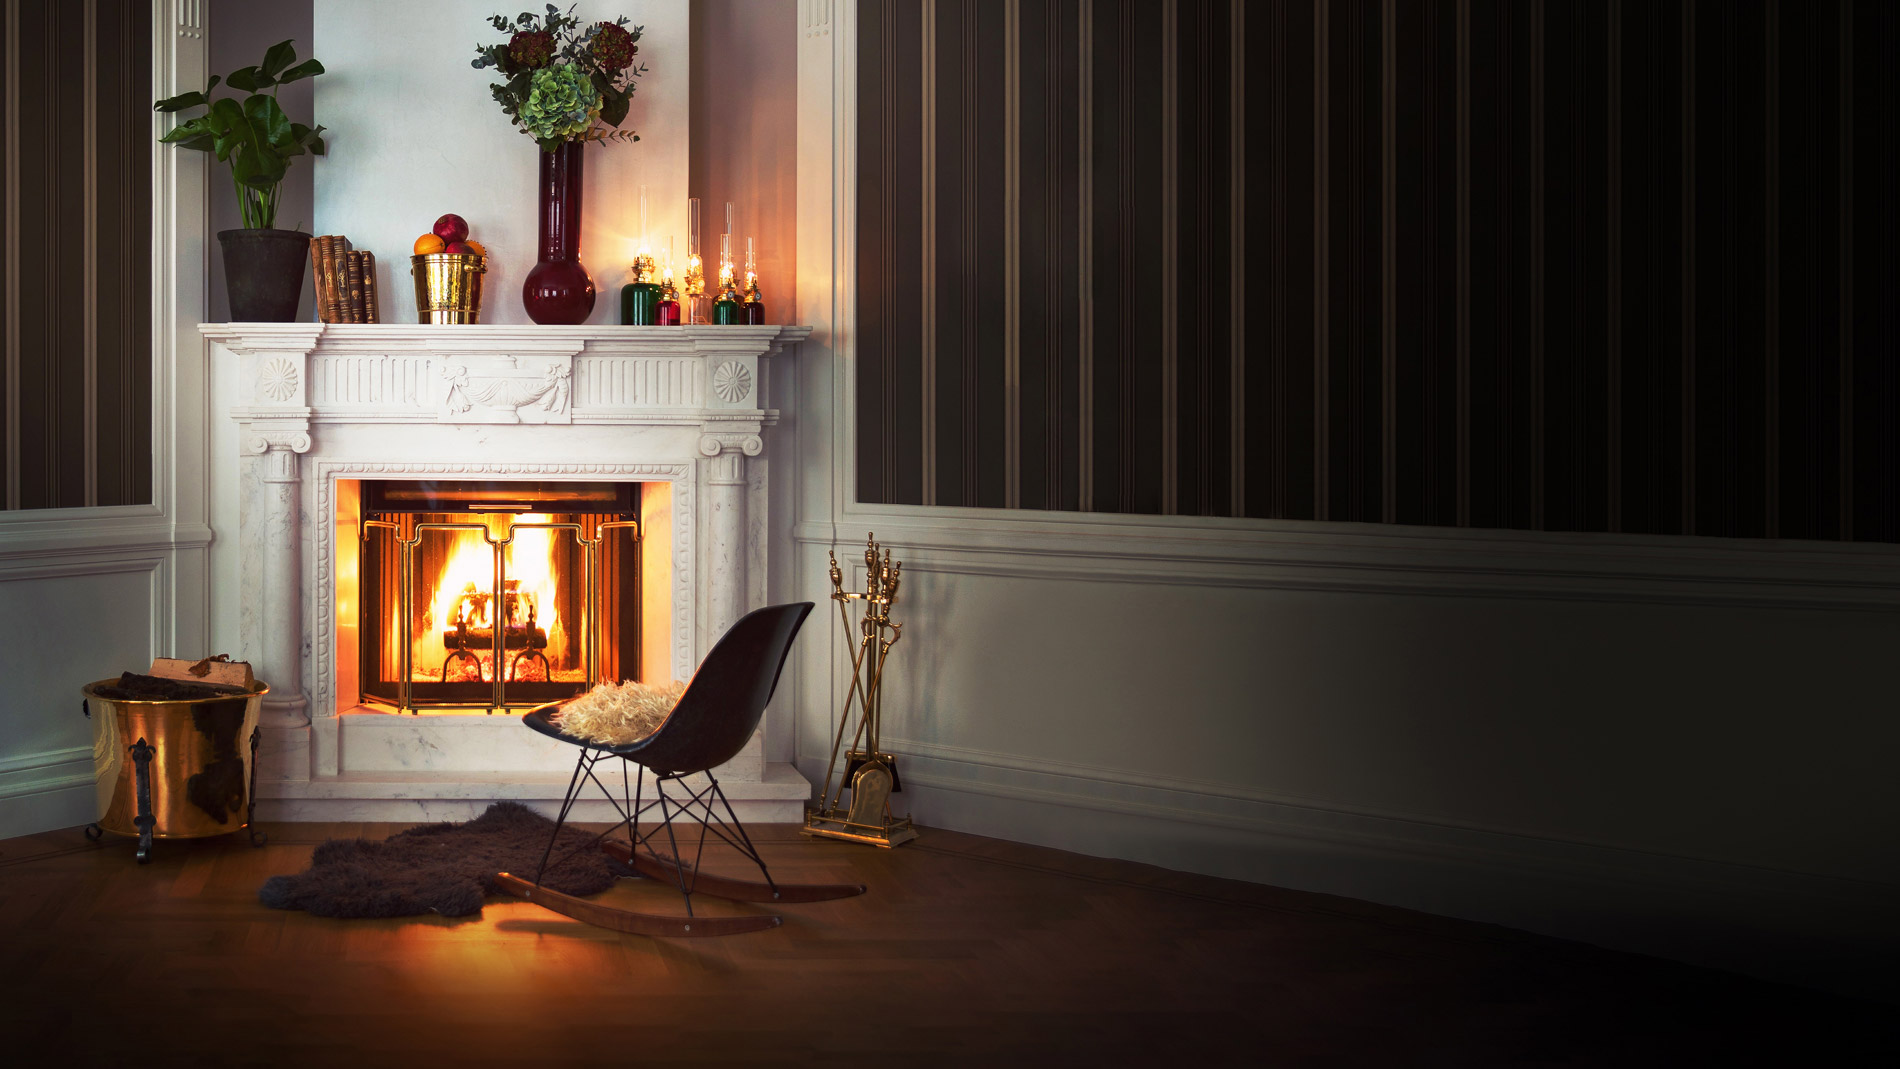 the fireplace - old style - vintage style - classic interior - old fashioned style